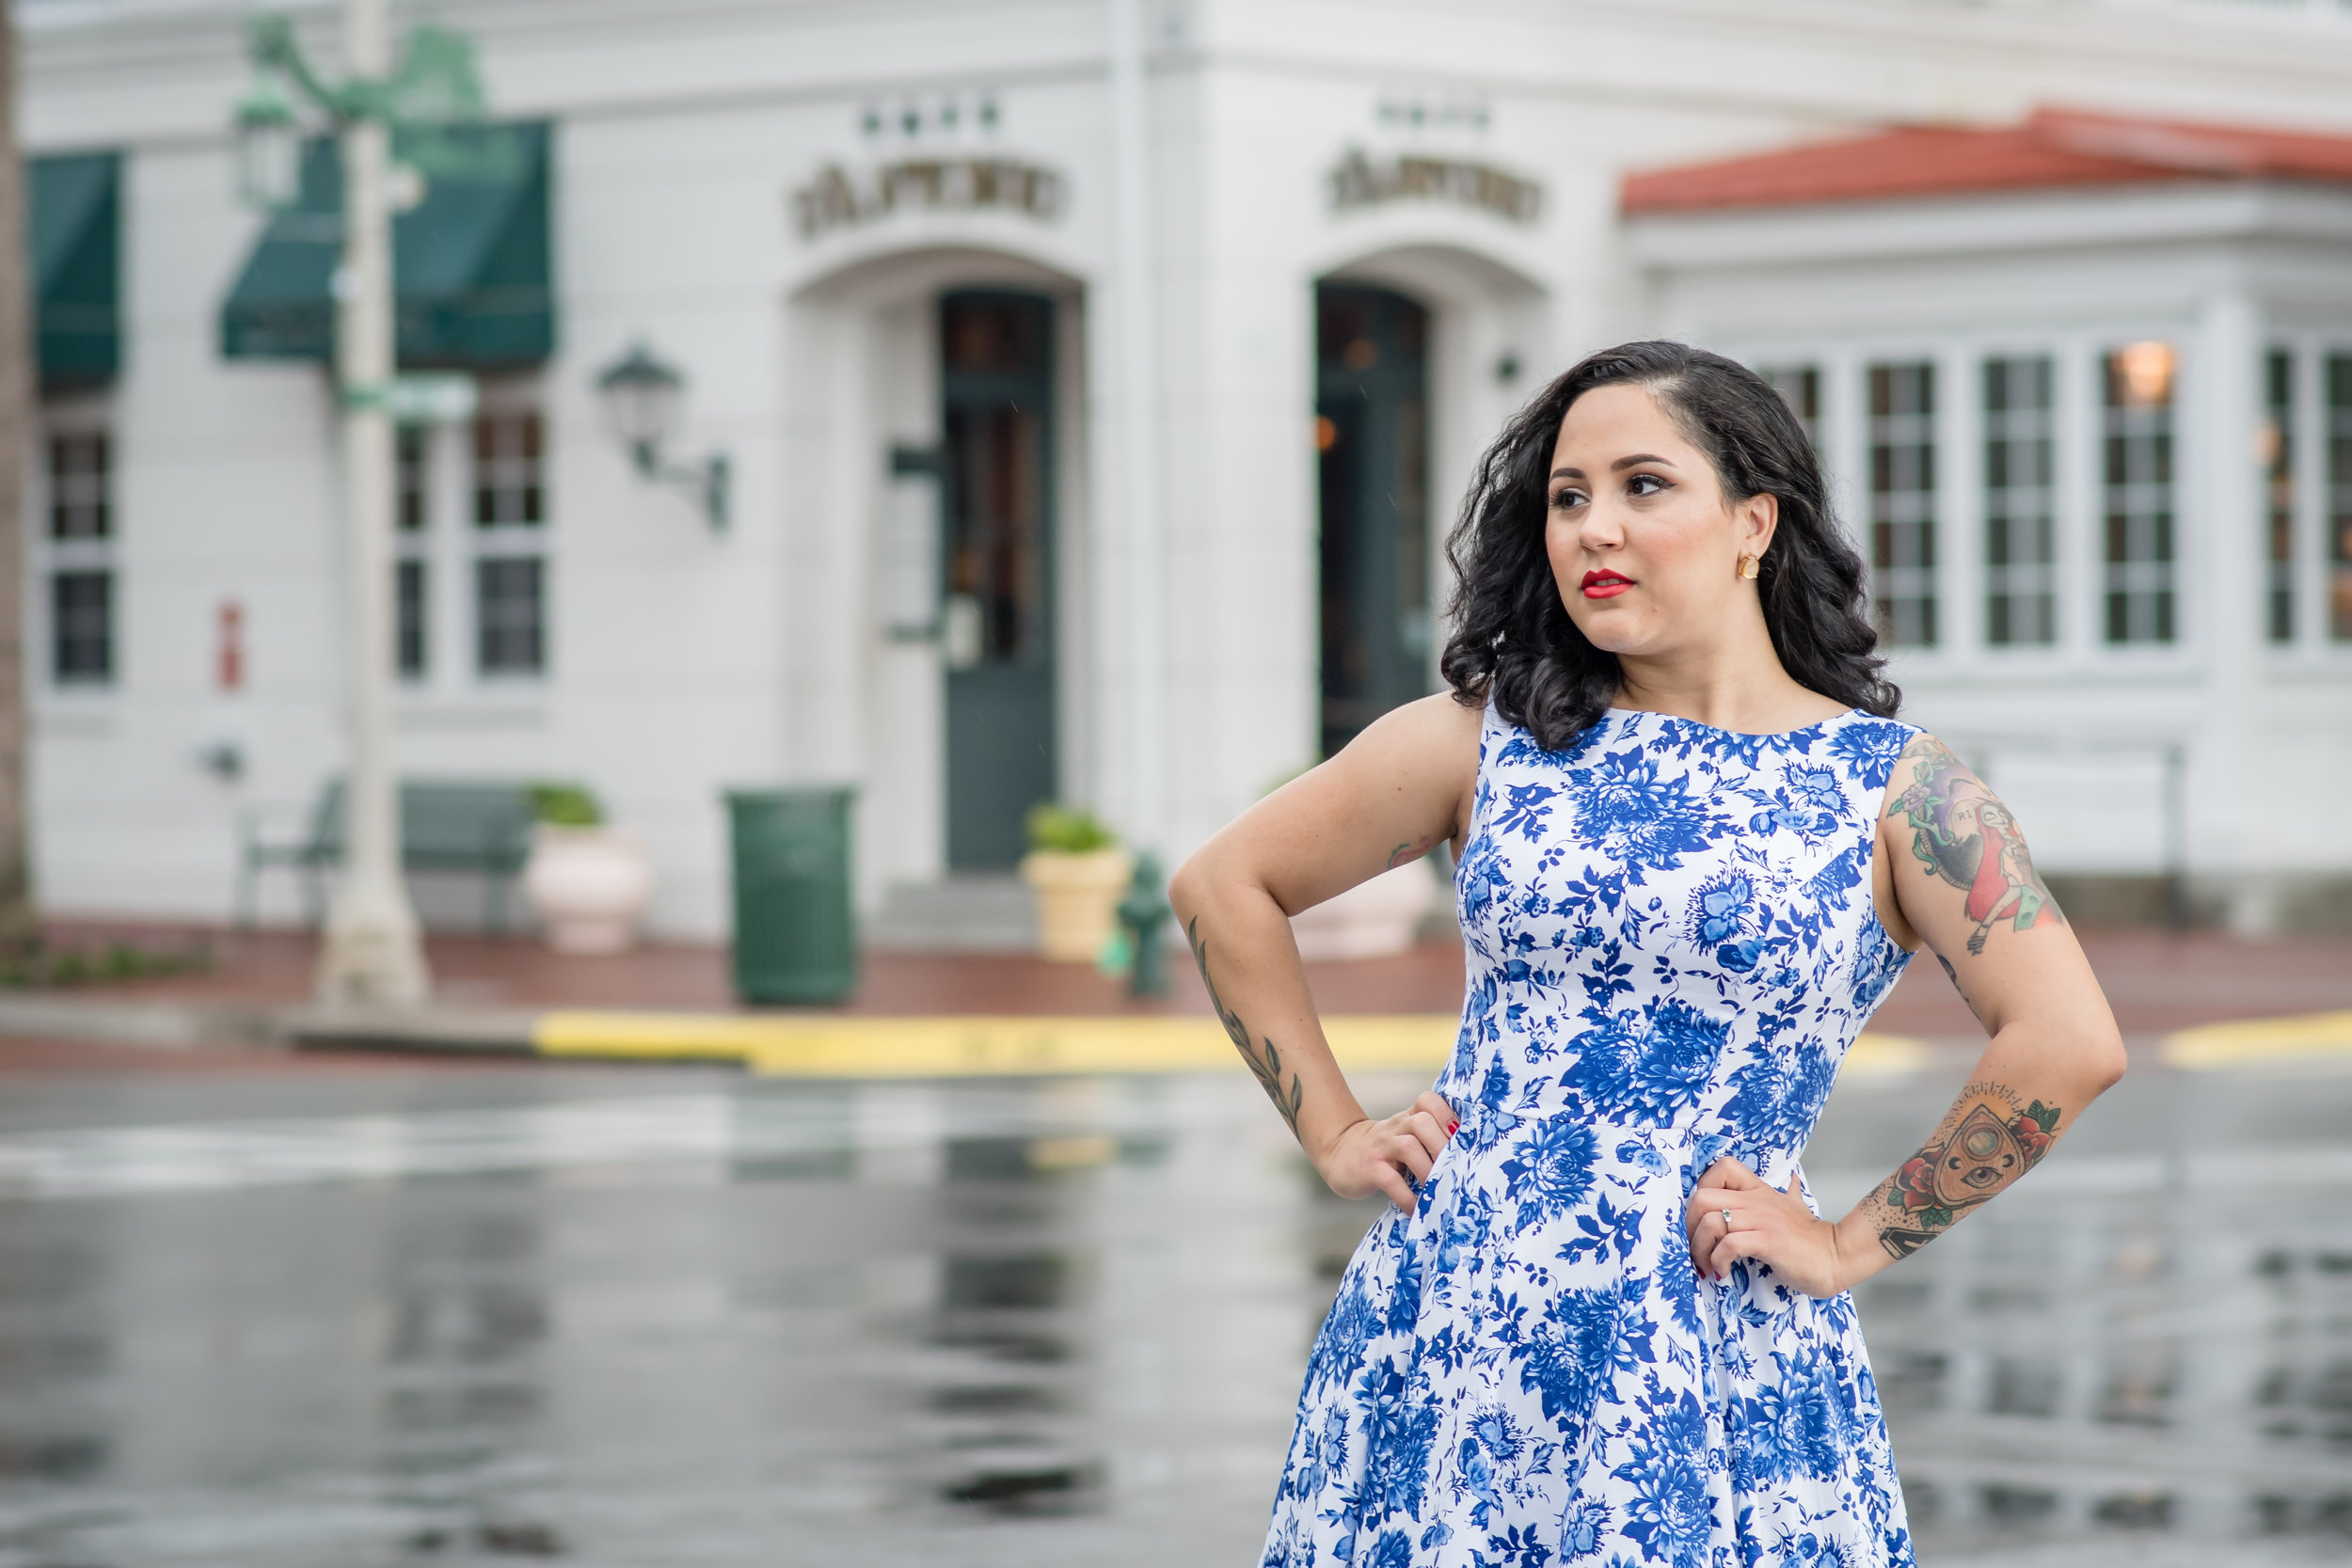 vintage-glam-inspired-photoshoot-downtown-celebration-orlando-photographer-yanitza-ninett-20.jpg